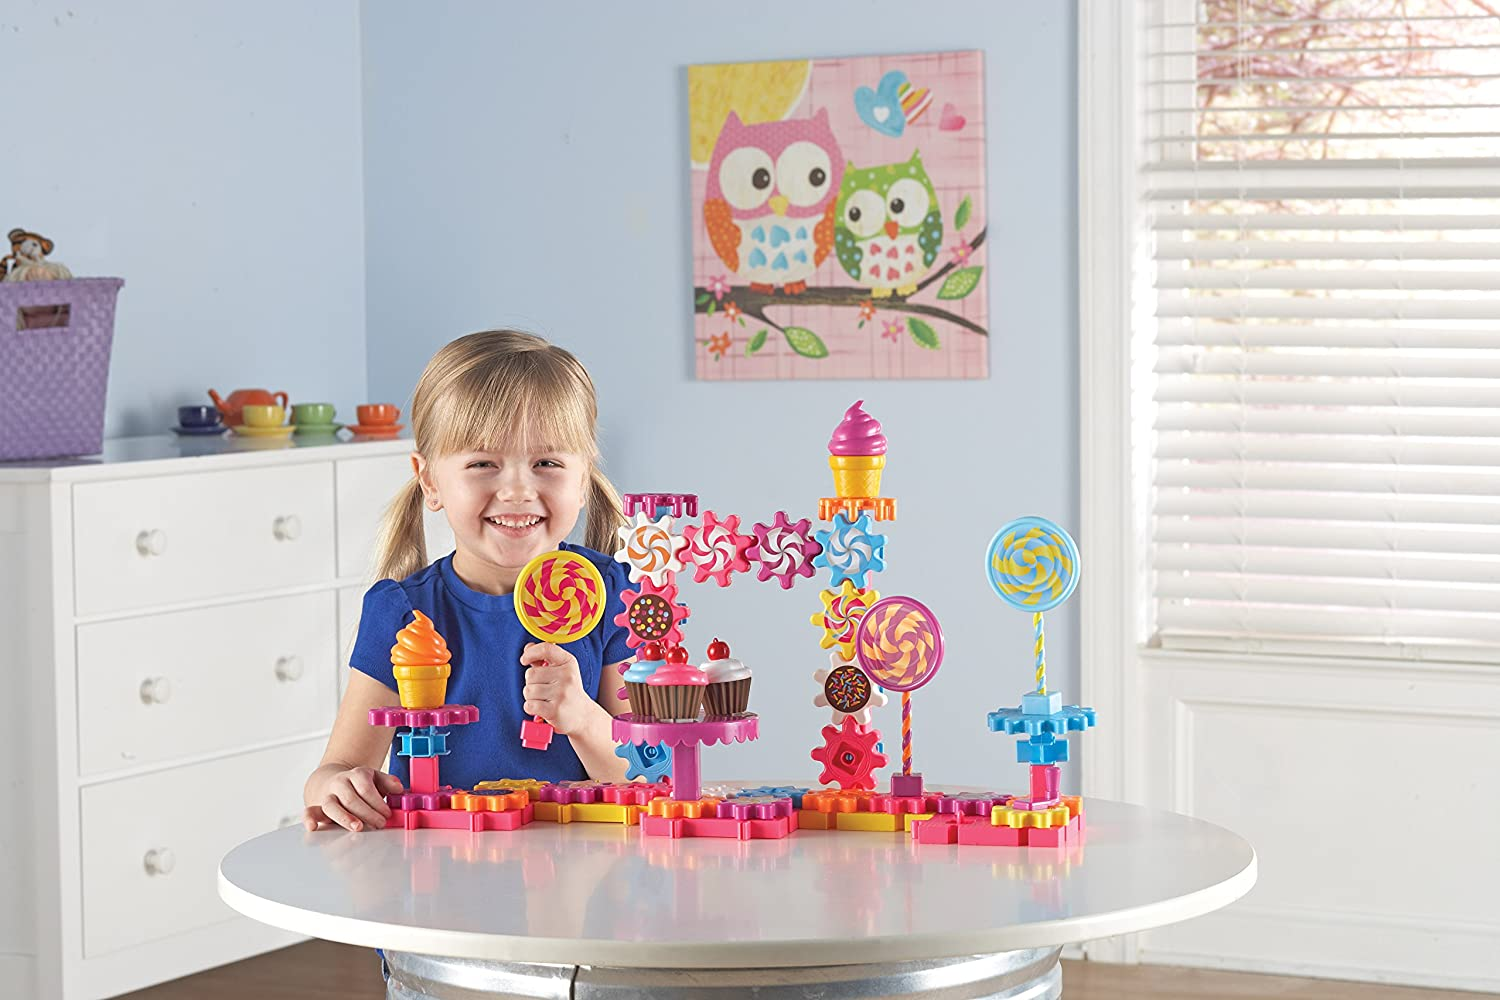 Invite endless creations with this 82-piece set